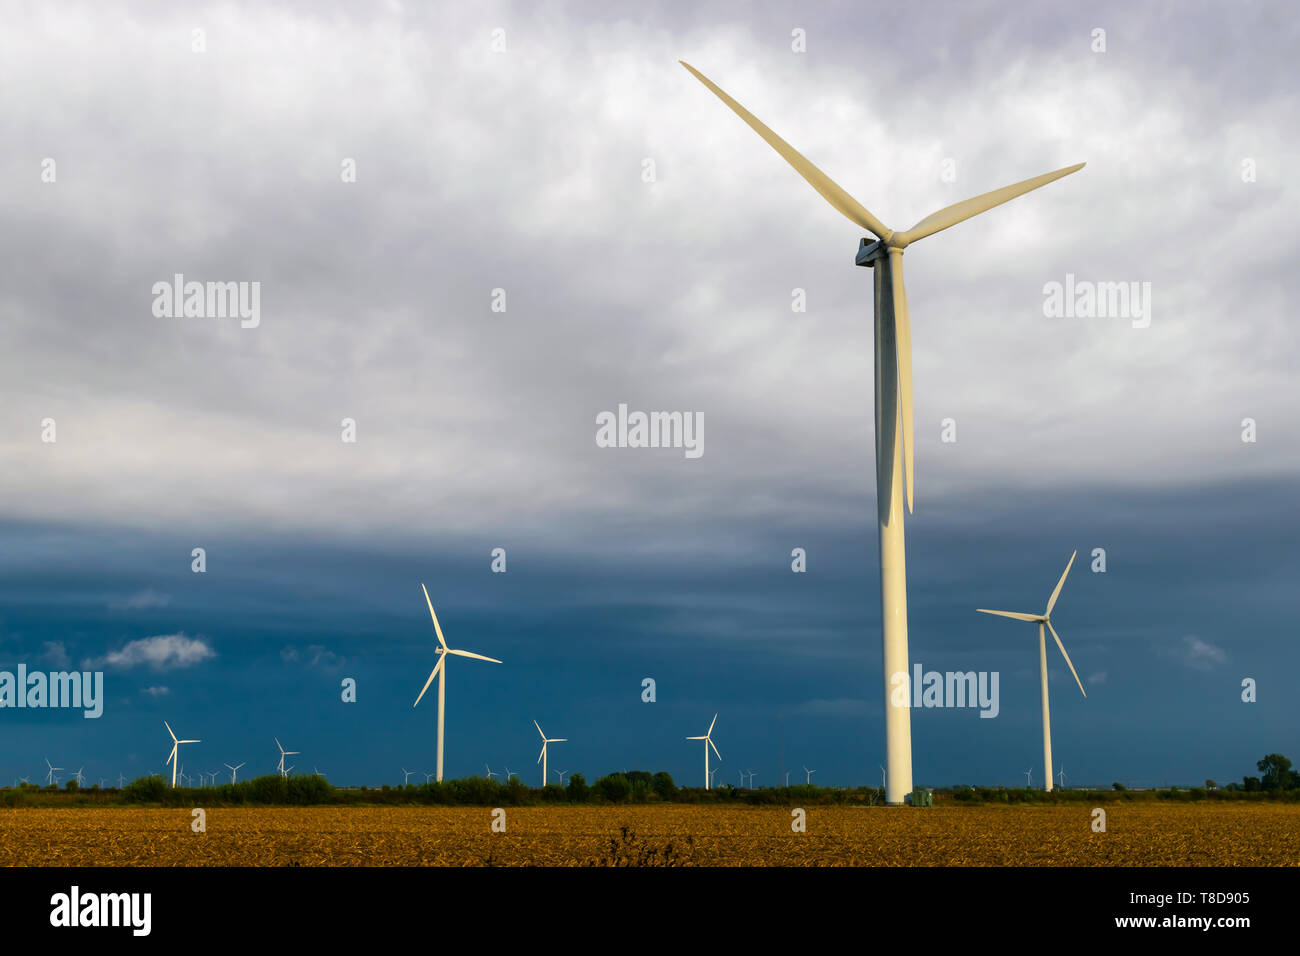 Wind Turbine during a cloudy day on a farm. - Stock Image